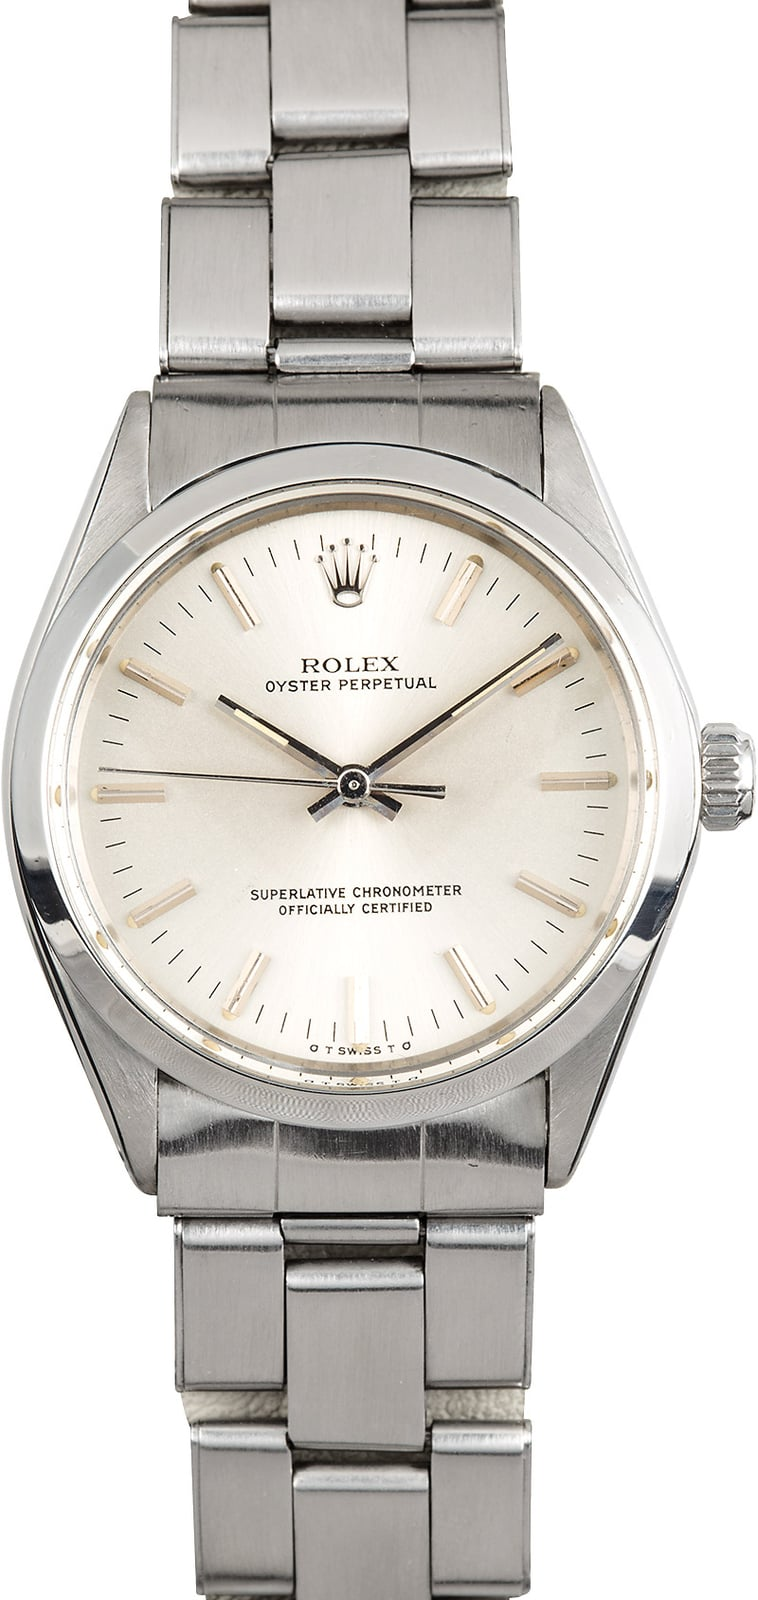 Vintage rolex oyster perpetual 1002 for Vintage rolex oyster